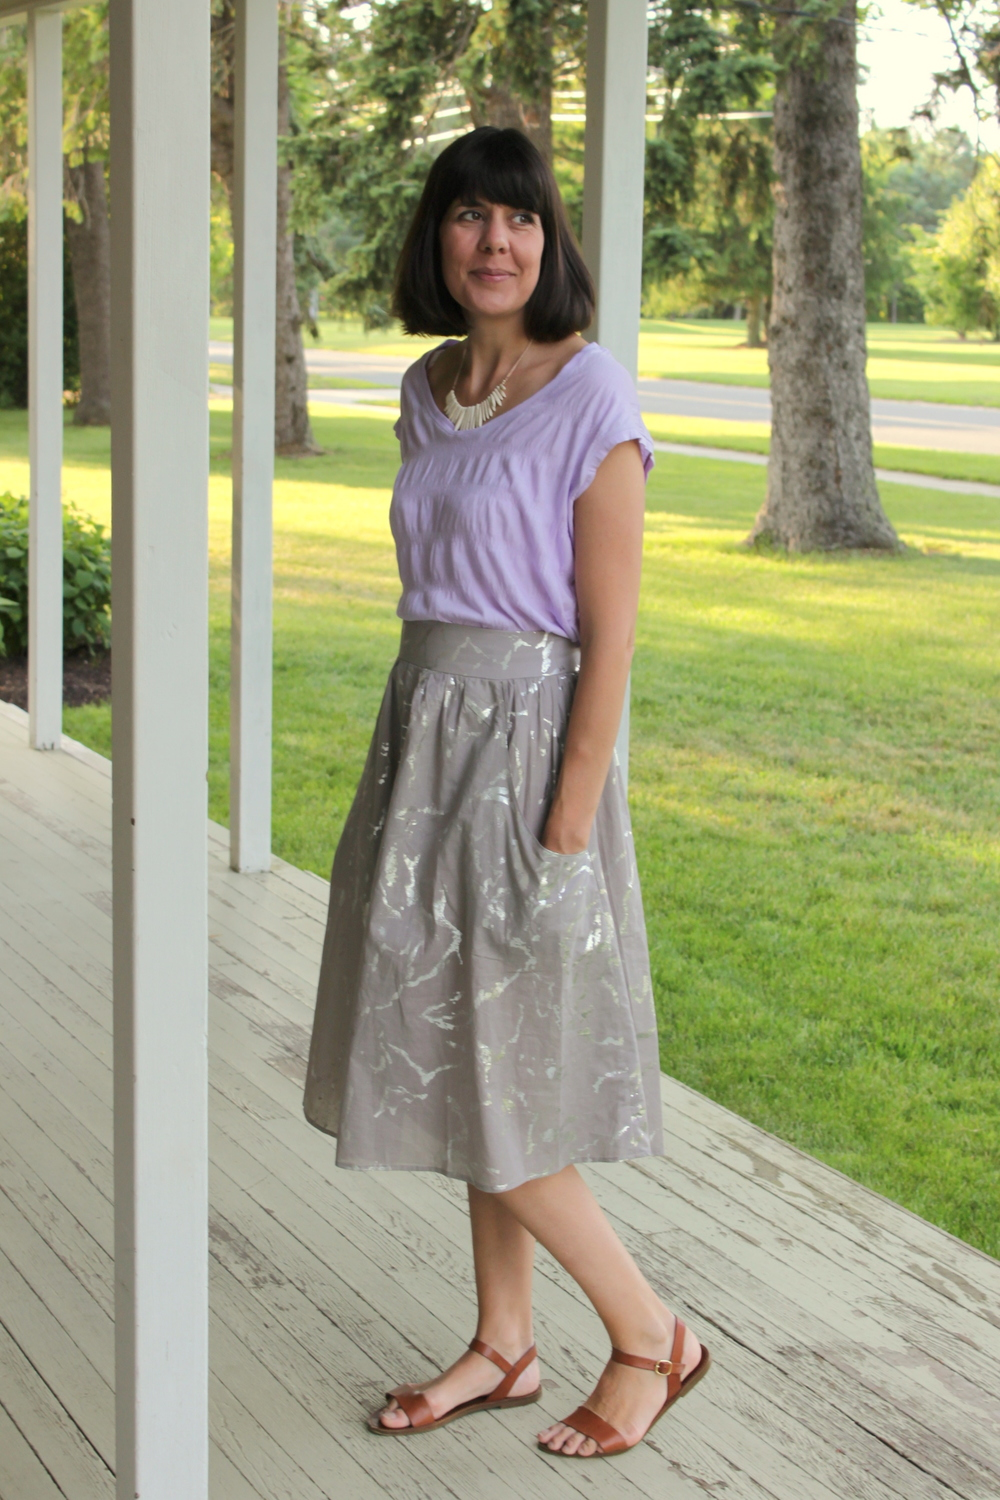 Brumby Skirt and Elise Tee 1